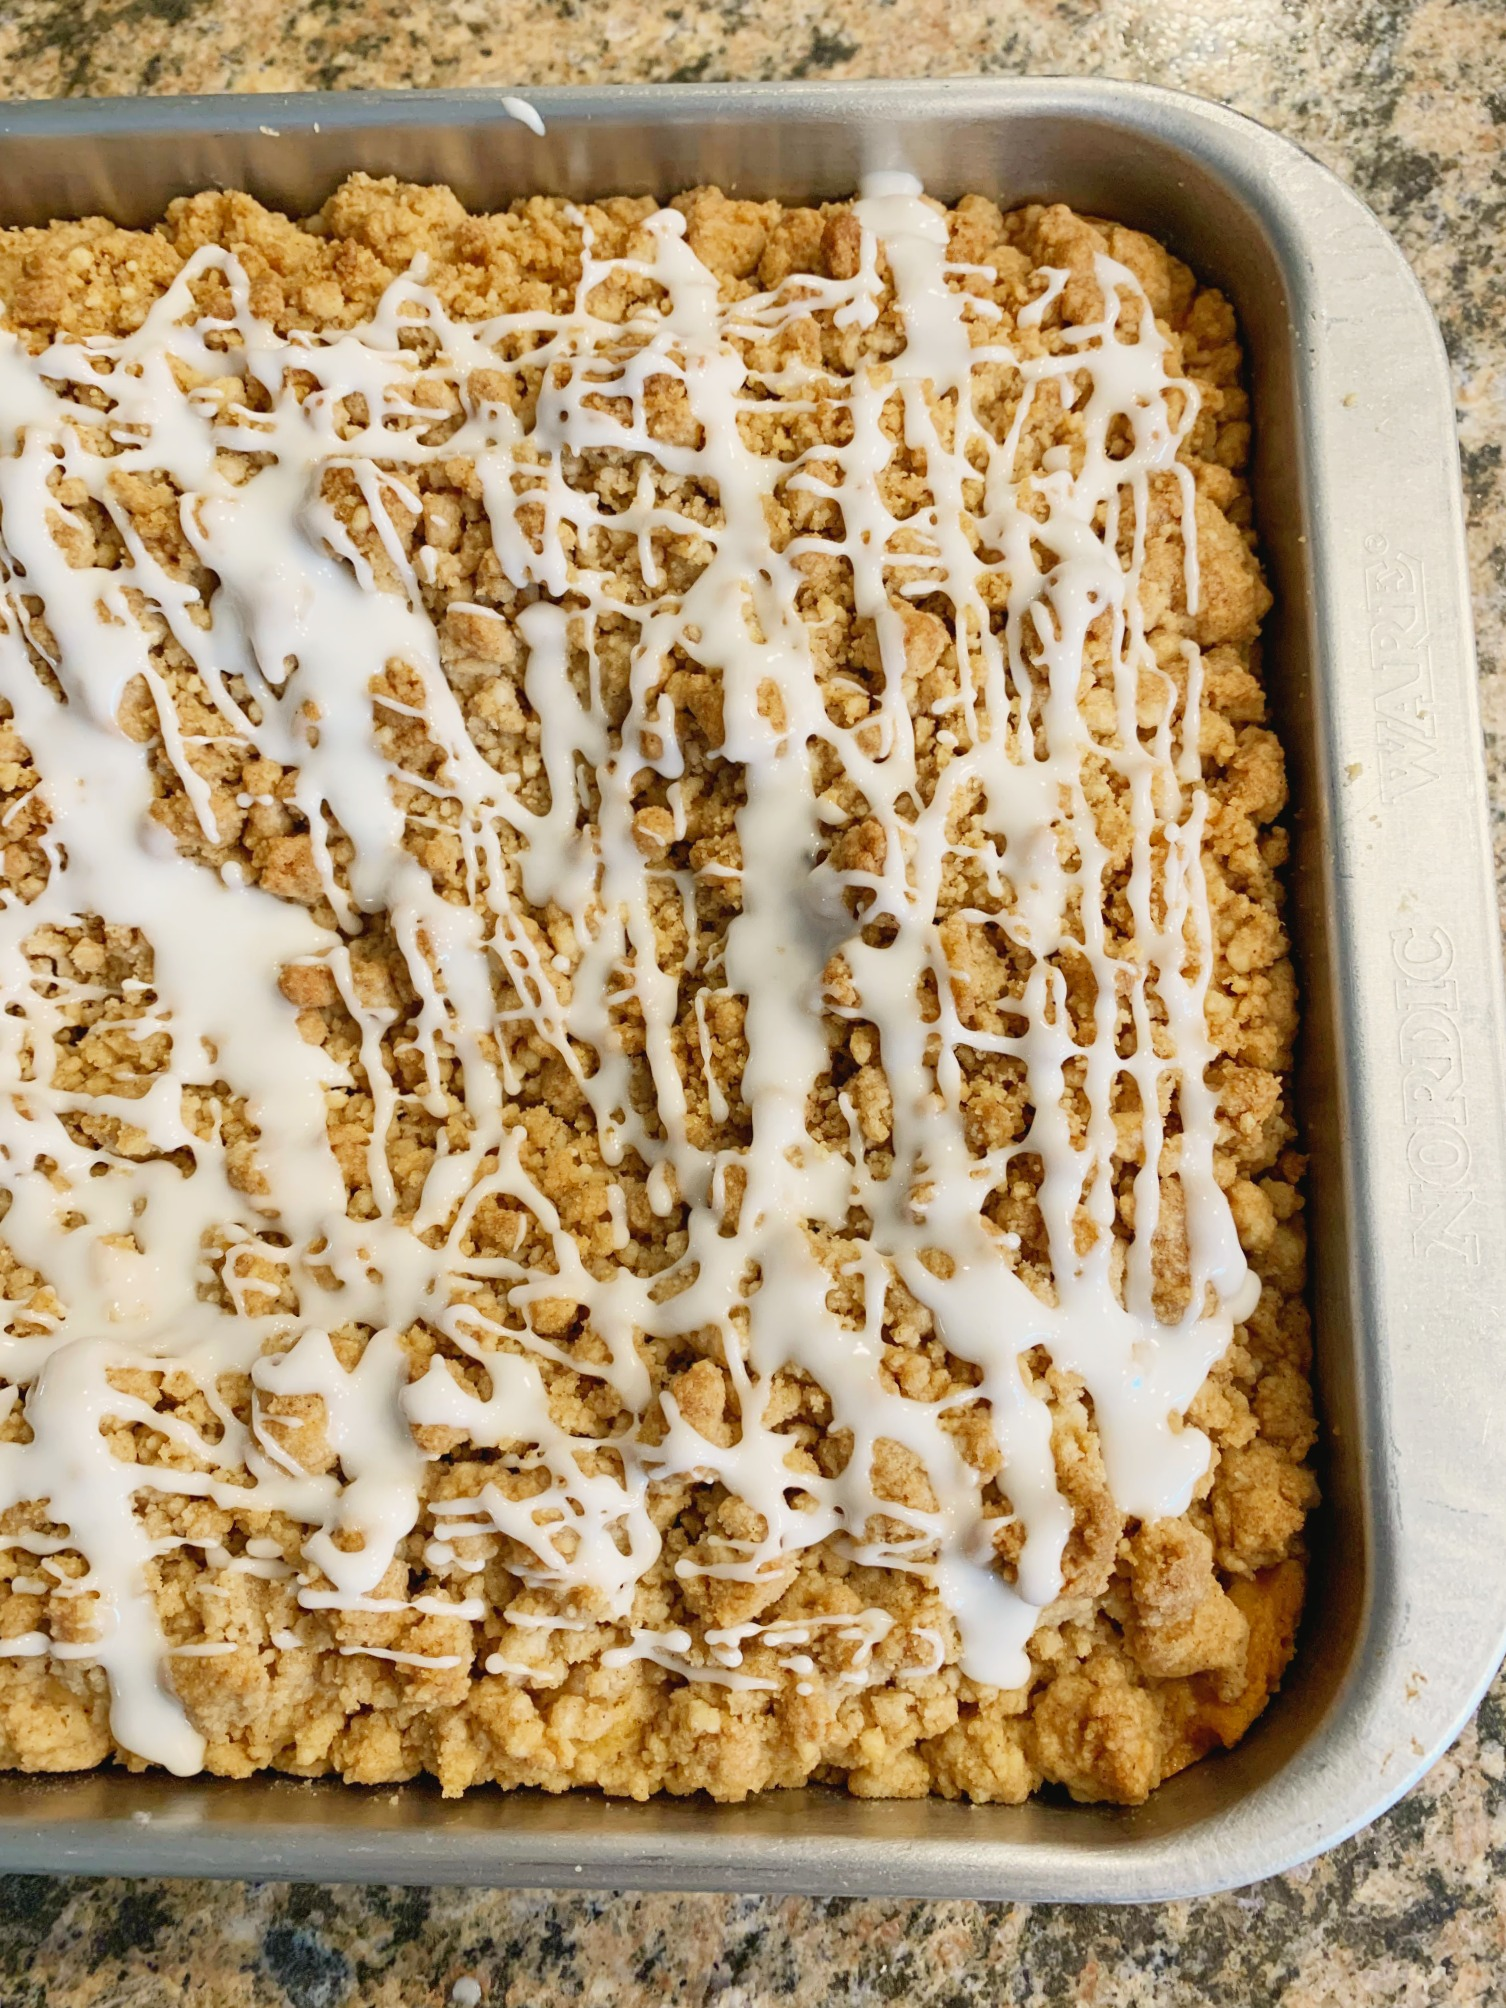 up close shot of the finished coffee cake still in the pan